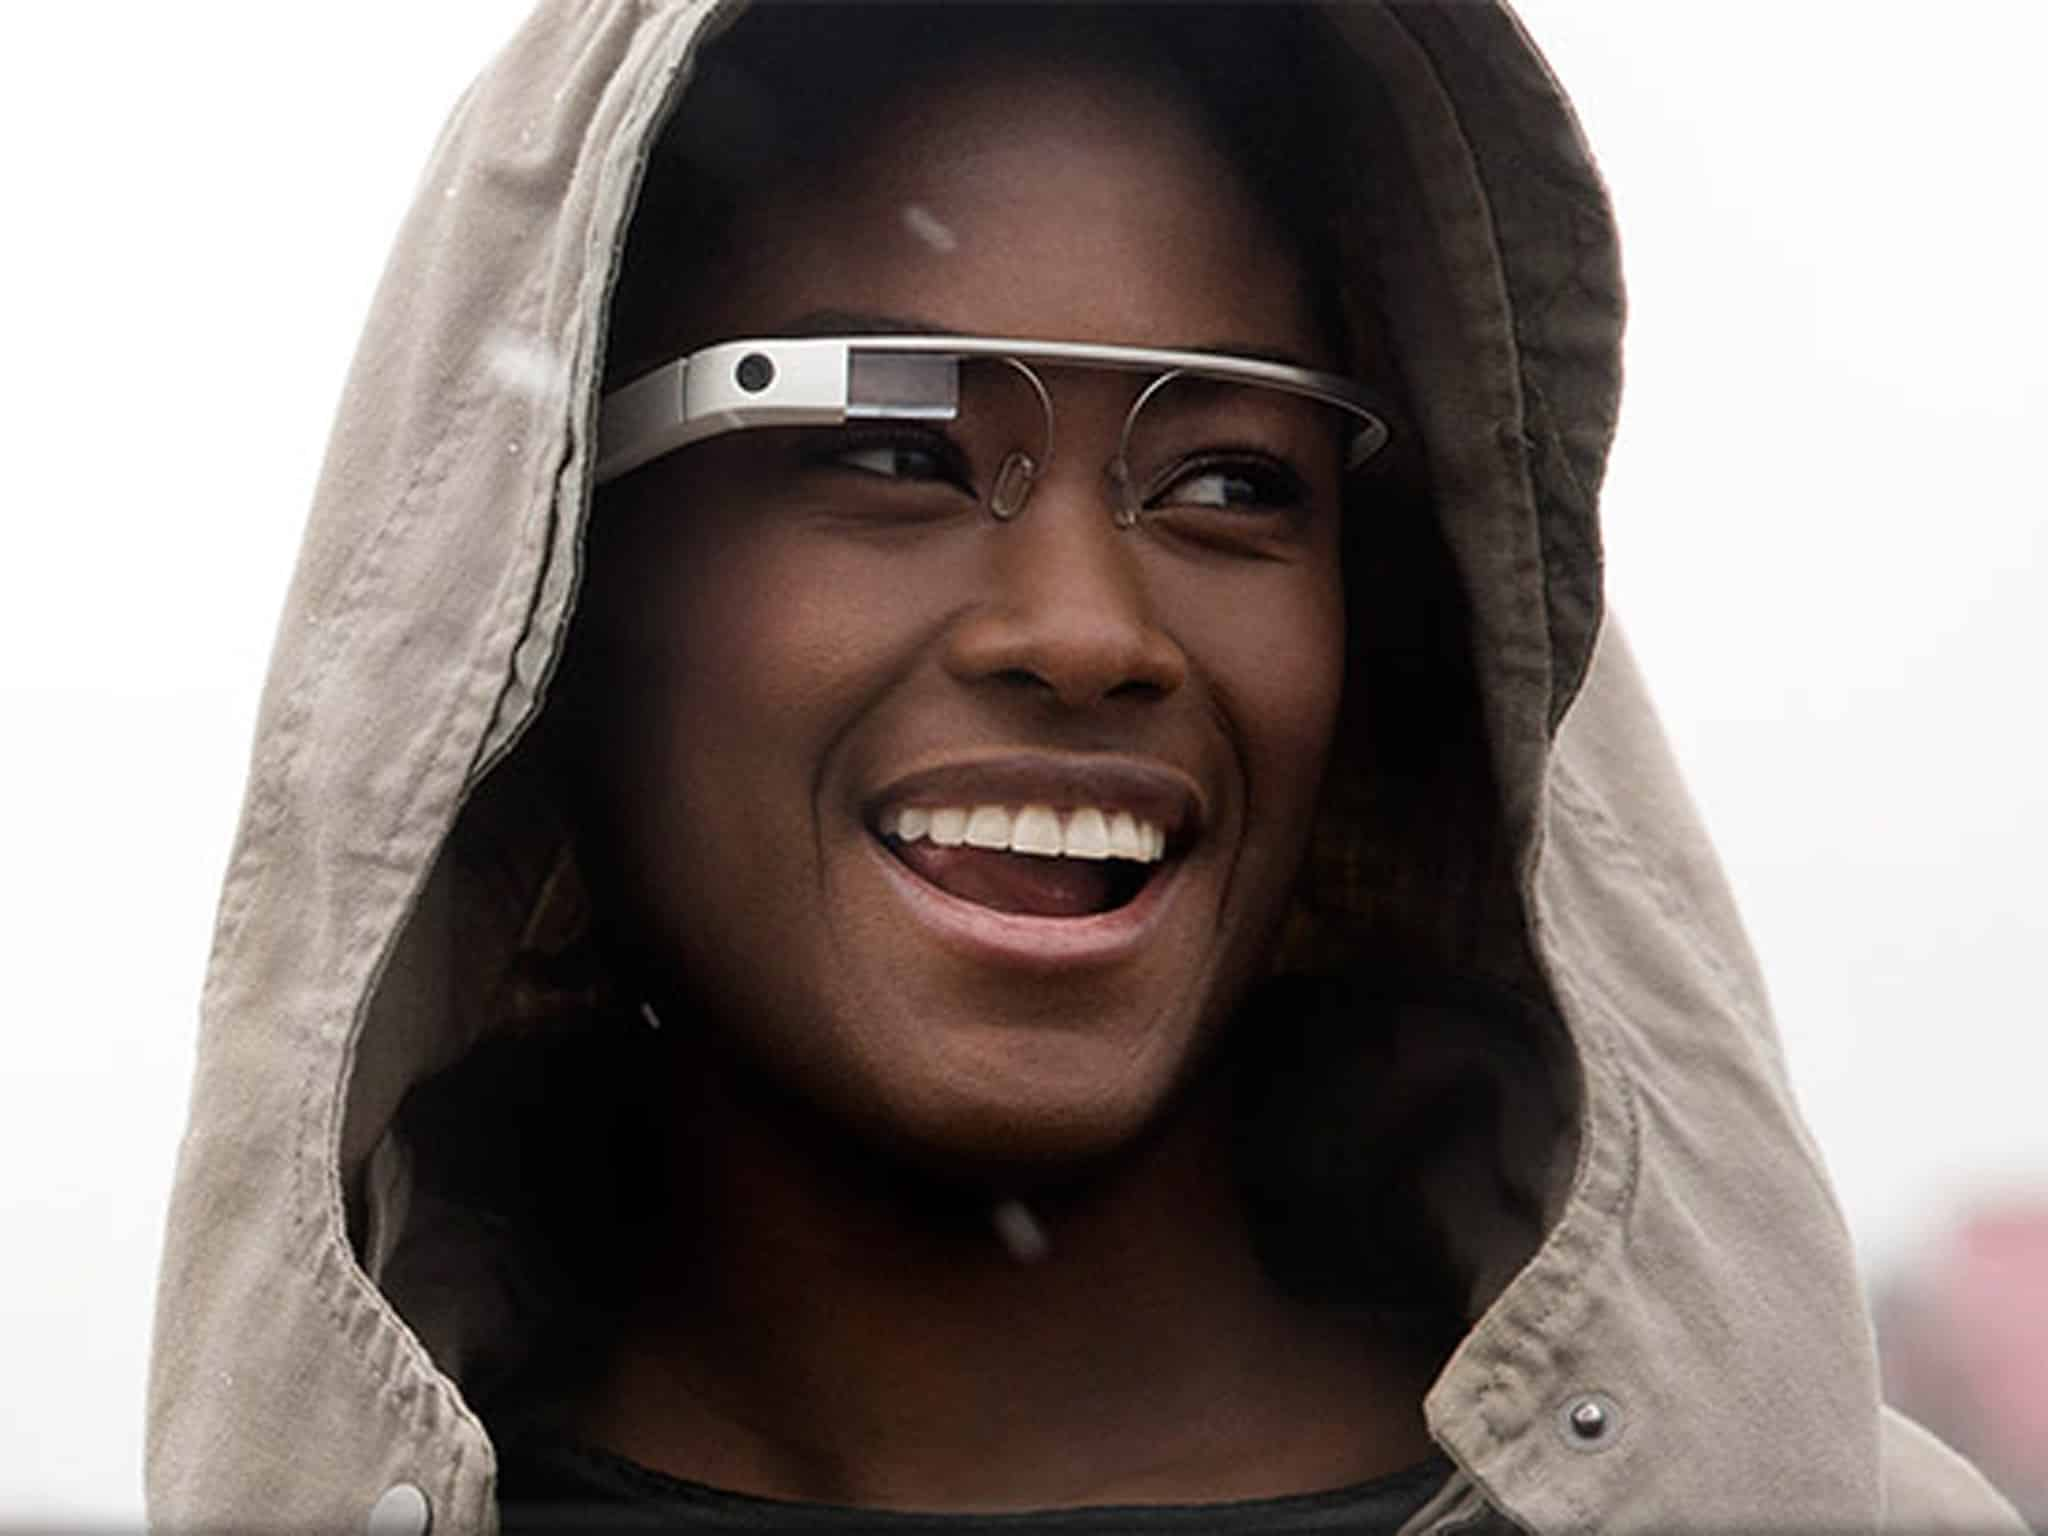 Changing Technology - How Google Glass Will Impact Our Lives And Technology As We Know It 4